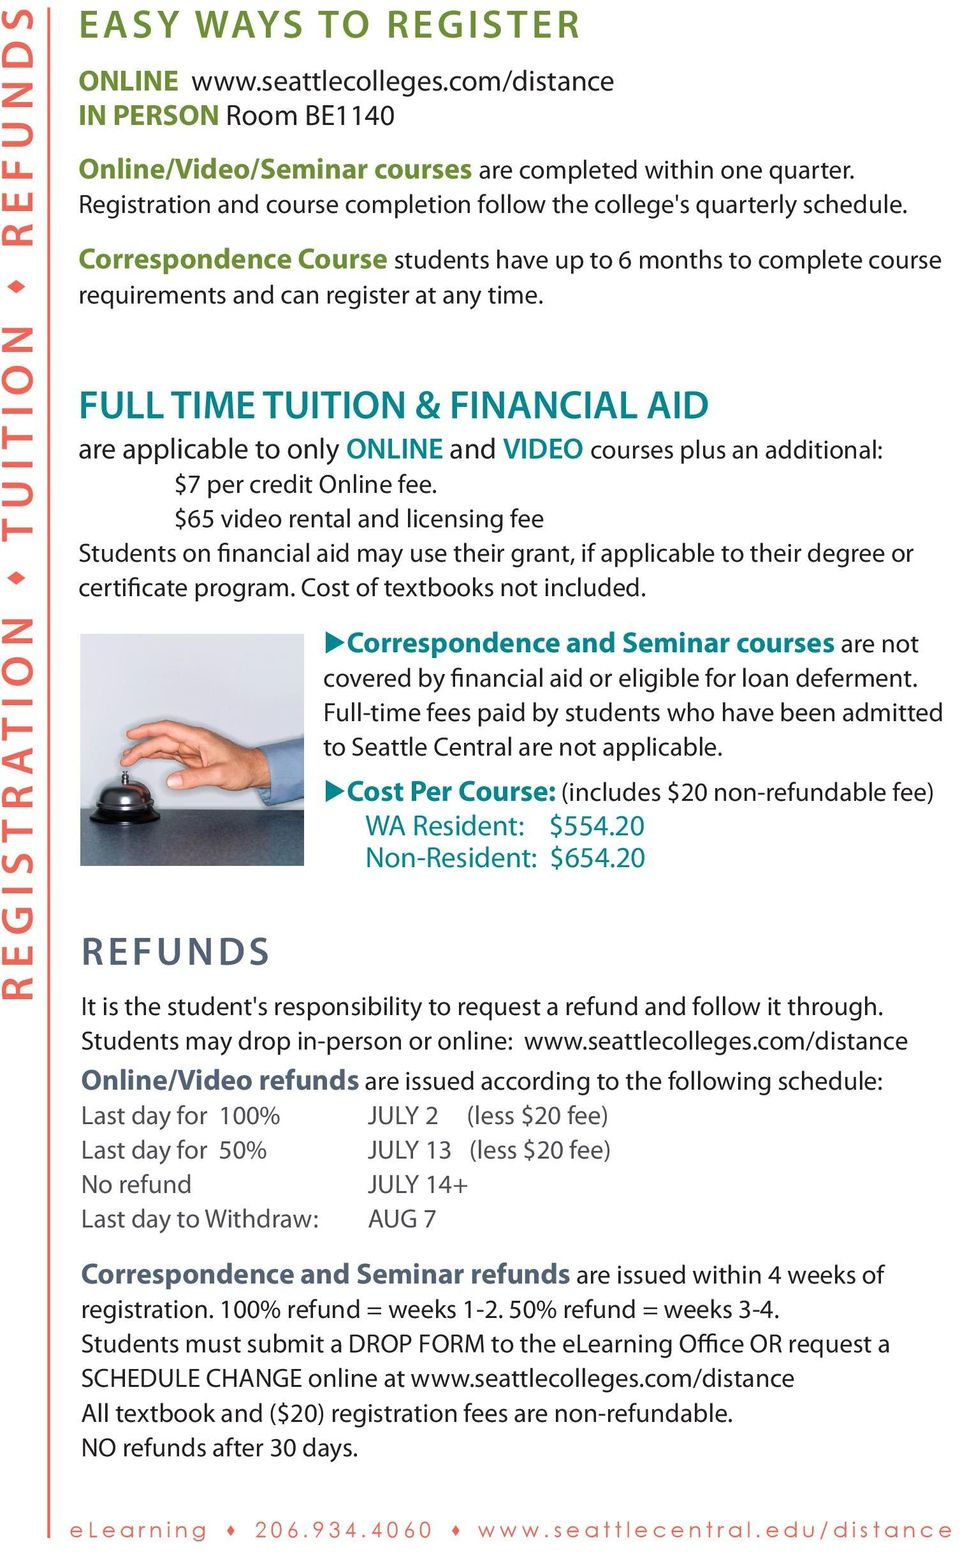 FULL TIME TUITION & FINANCIAL AID are applicable to only ONLINE and VIDEO courses plus an additional: $7 per credit Online fee.